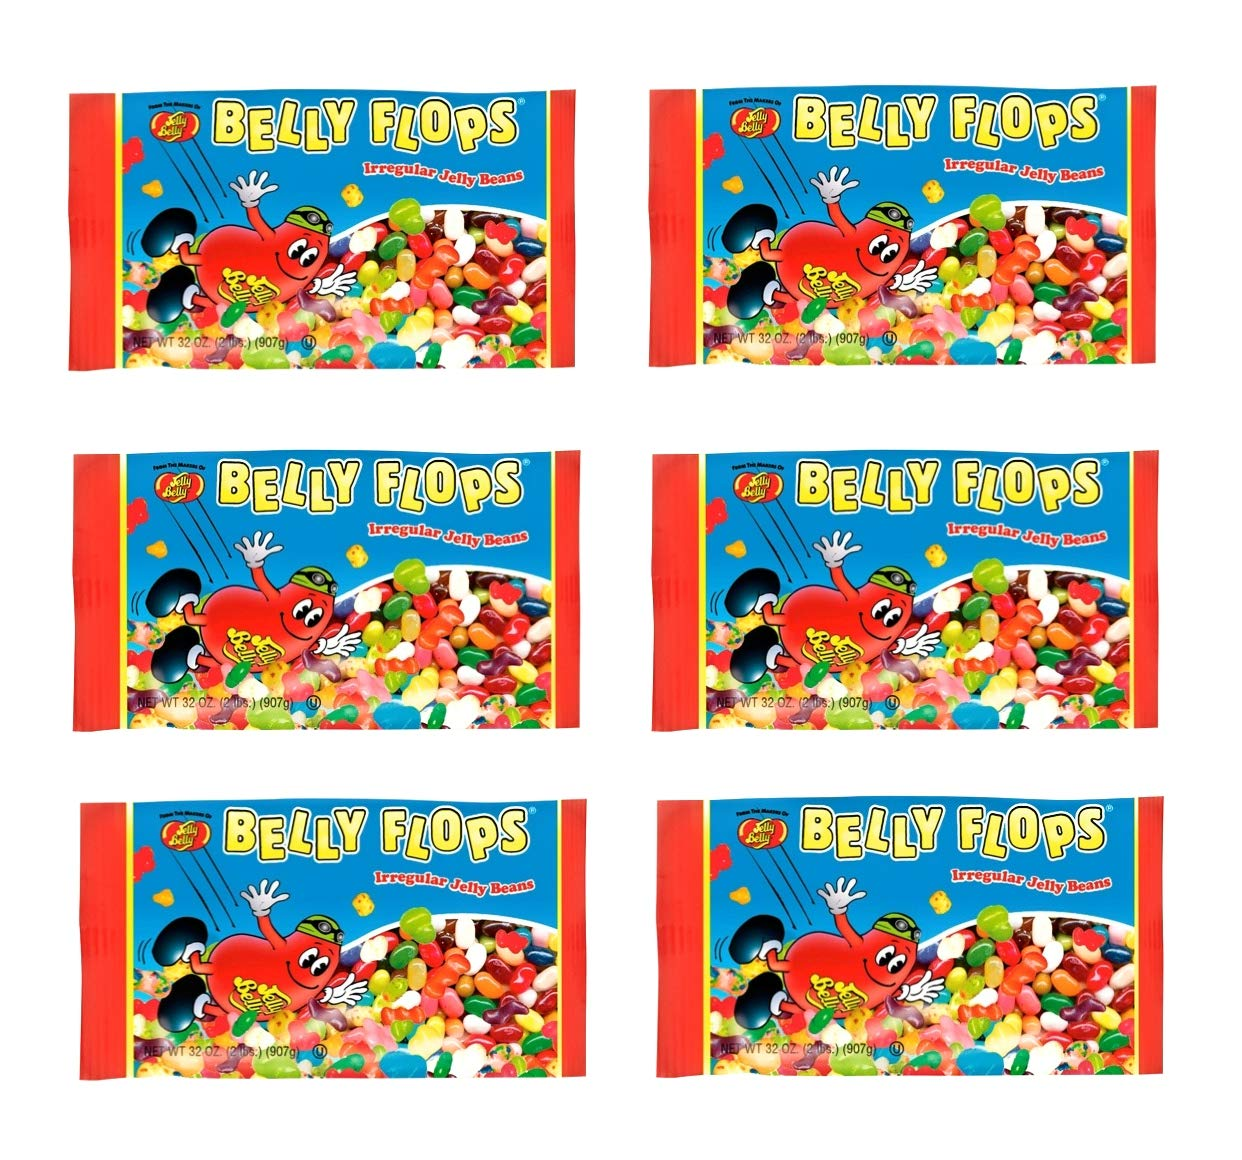 Jelly Belly, Belly Flops Jelly Beans - Pack of 6 Bags - 1 Pound per Bag